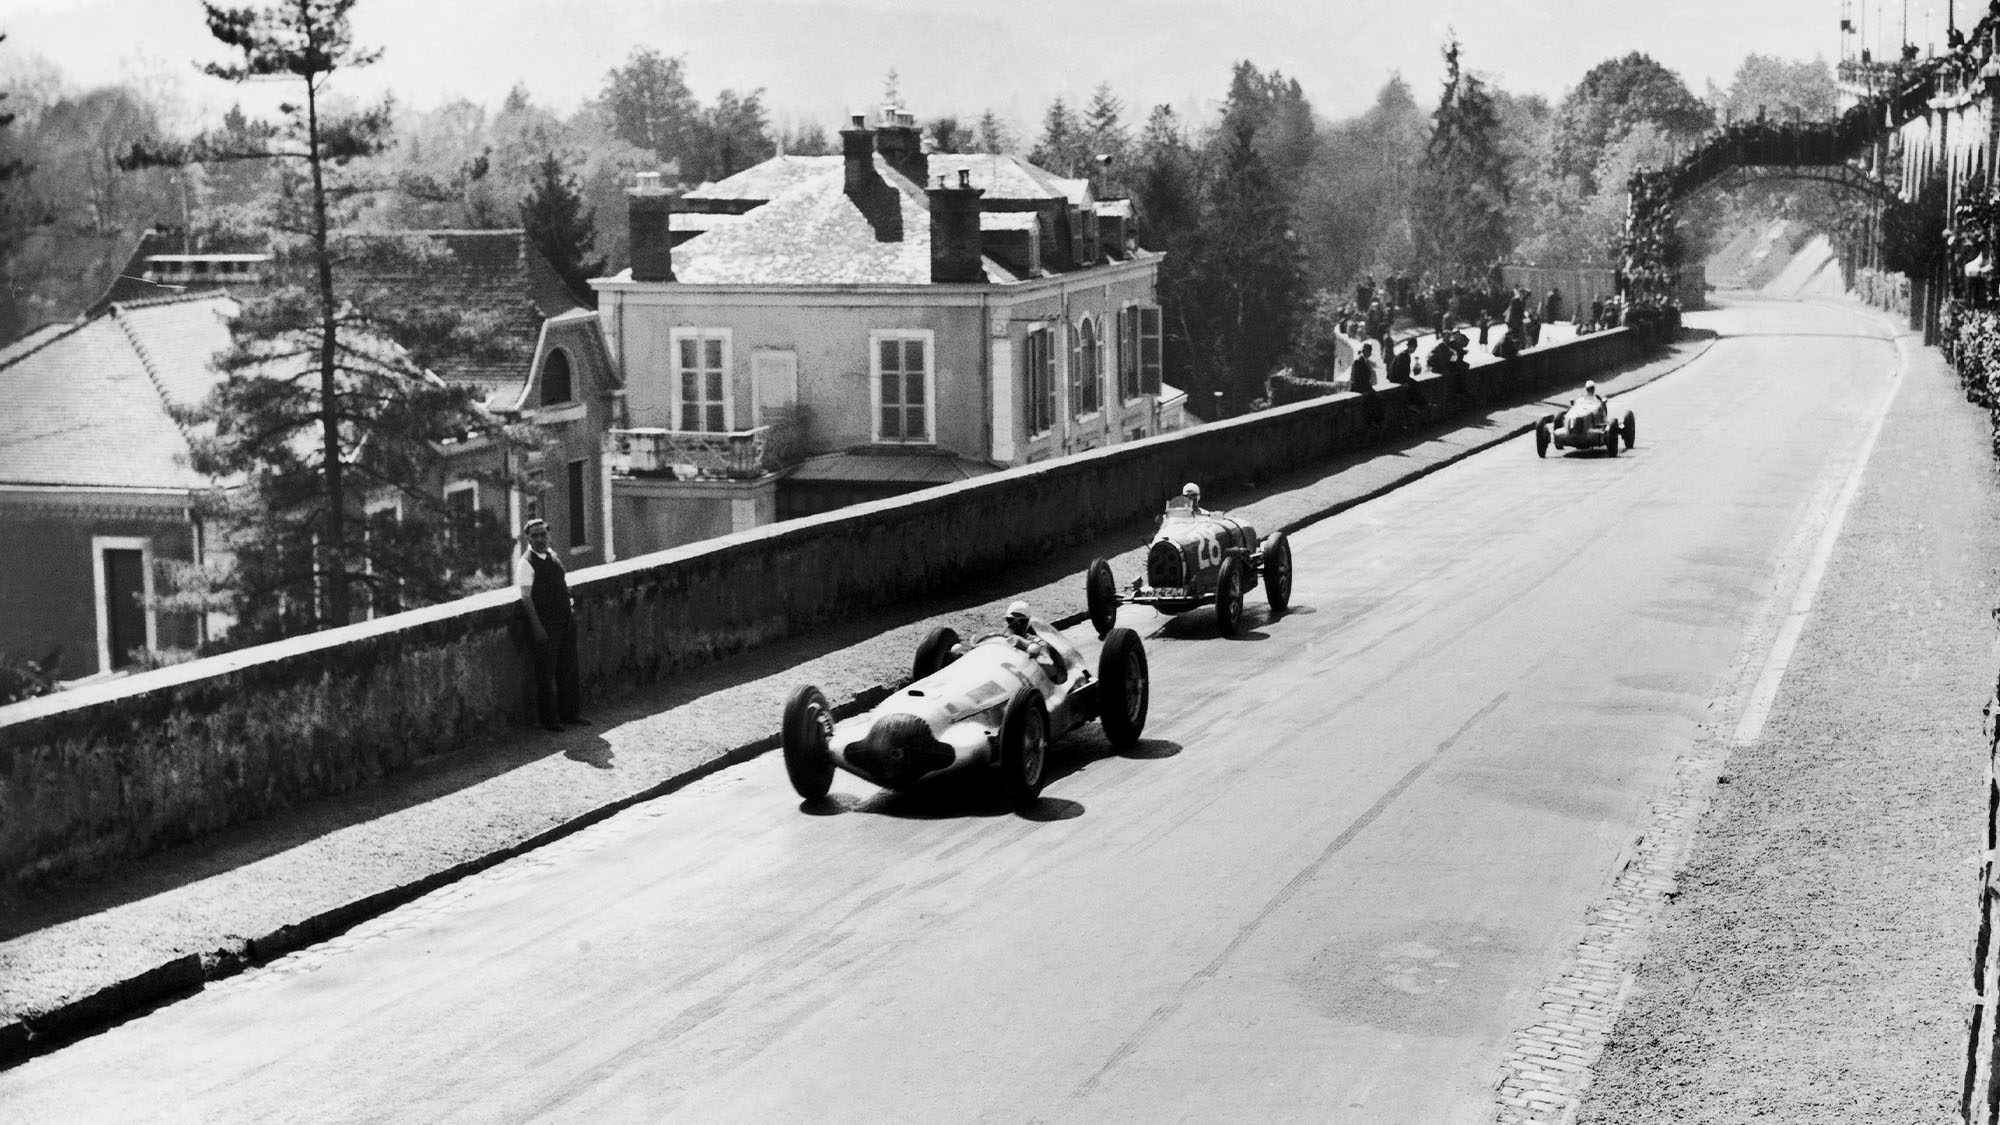 FRANCE - APRIL 11: On April 11, 1938 On The Racing Circuit Of The Grand Prix De Pau, The Mercedes-Benz W154 Piloted By Rudolf Caracciola (Number 6) Followed By Maurice Trintignant'S Bugatti T35-51 Runs Down A Straight Line At Full Speed. (Photo by Keystone-France/Gamma-Keystone via Getty Images)